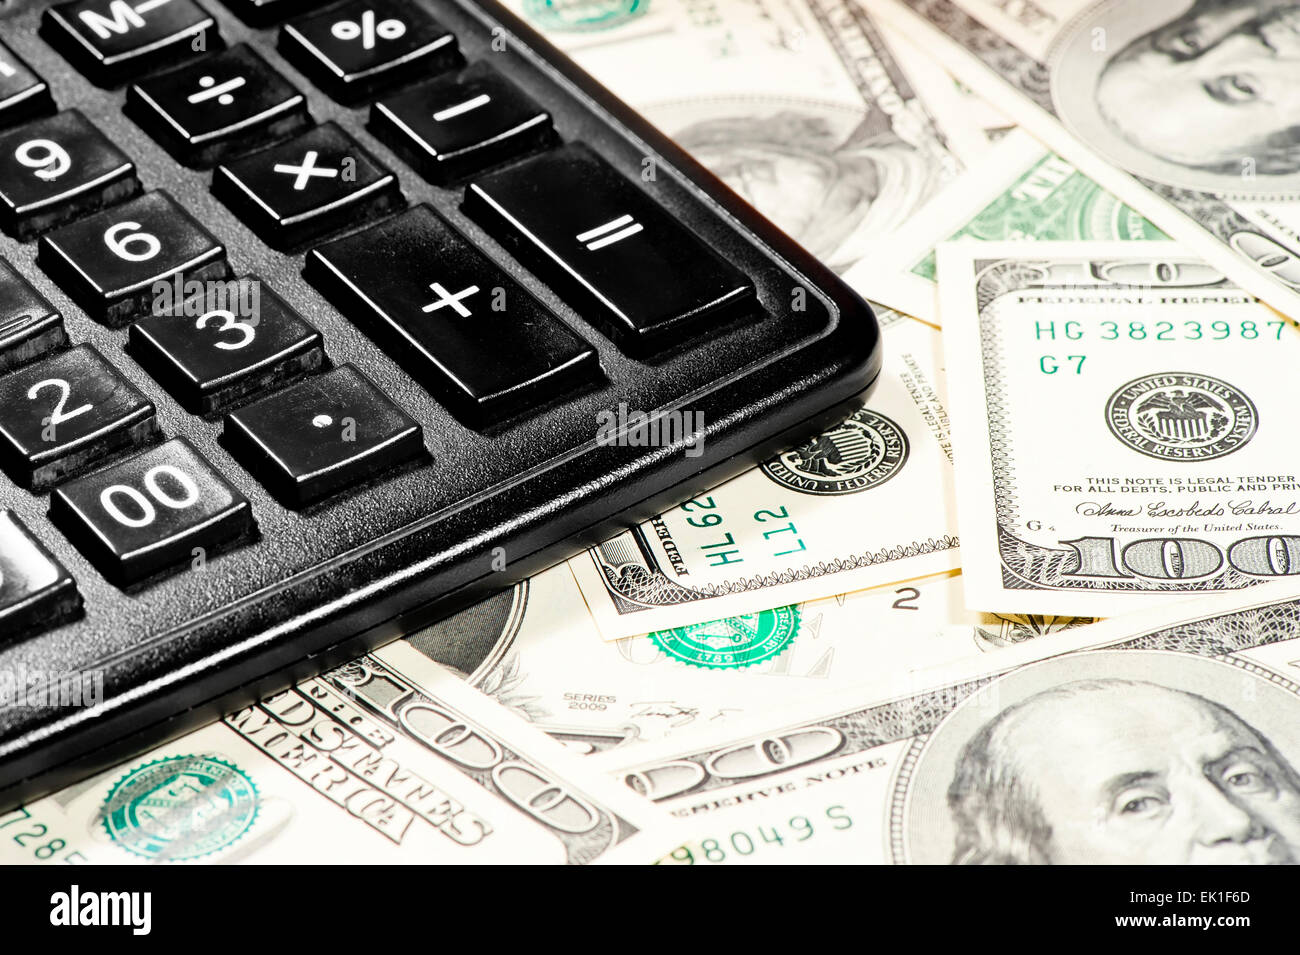 counting profits earned on the calculator - Stock Image